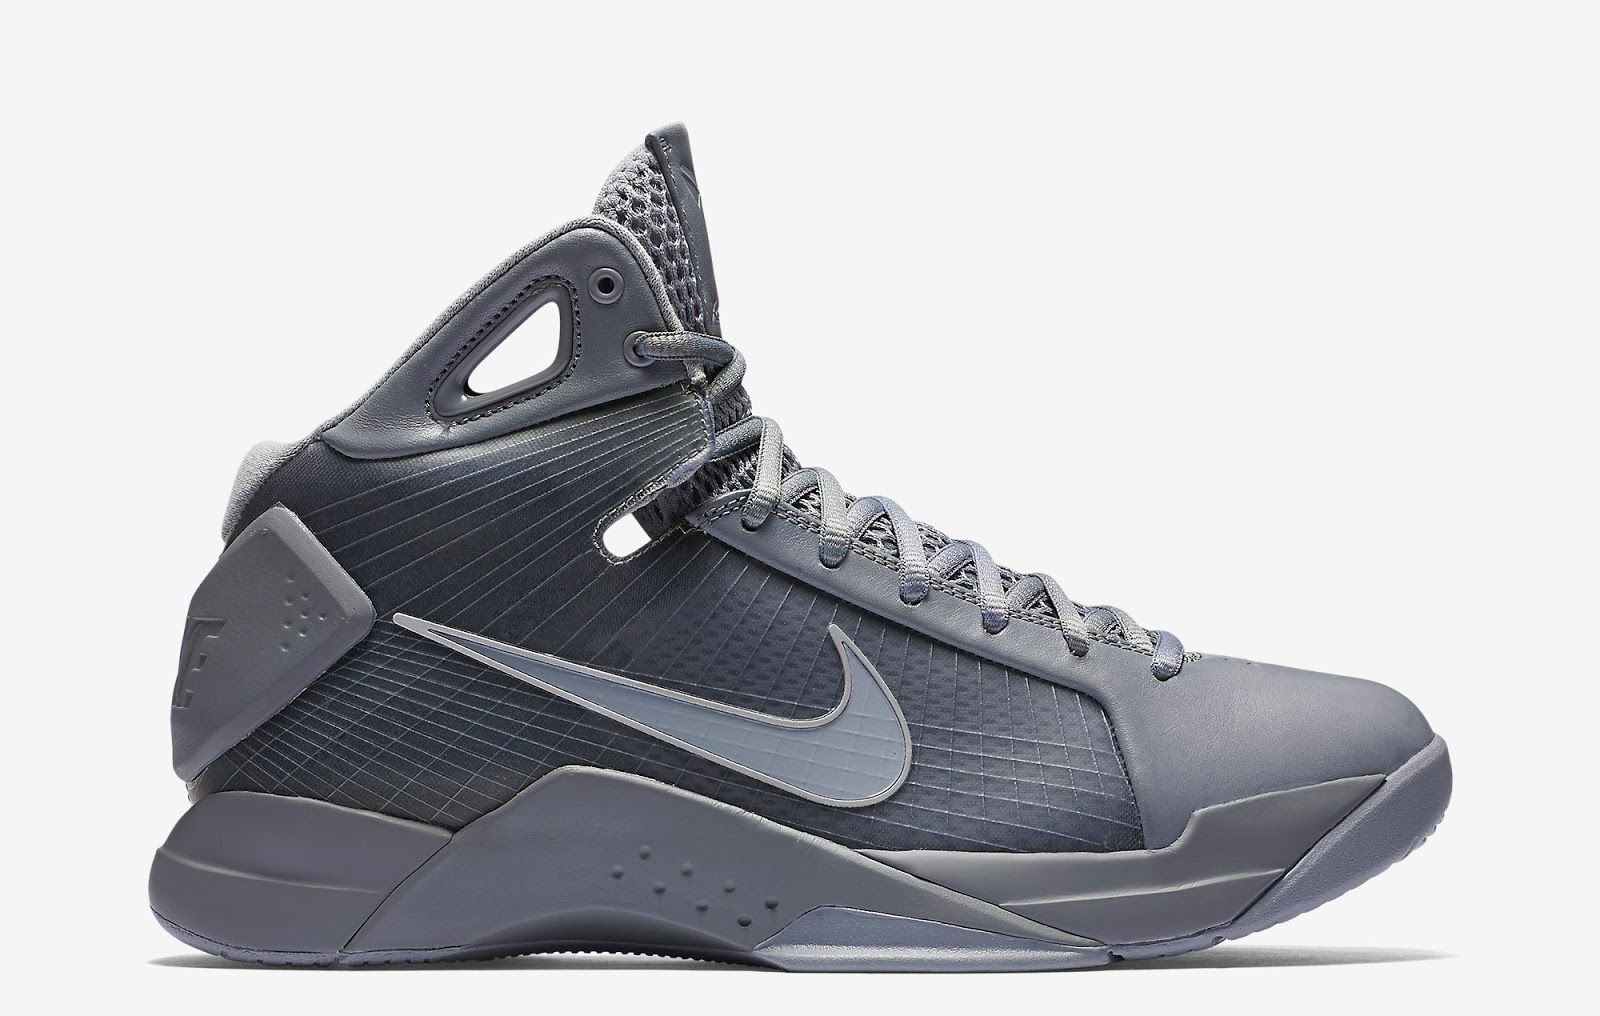 check out a0d3e 68807 ajordanxi Your  1 Source For Sneaker Release Dates  Nike Hyperdunk ...